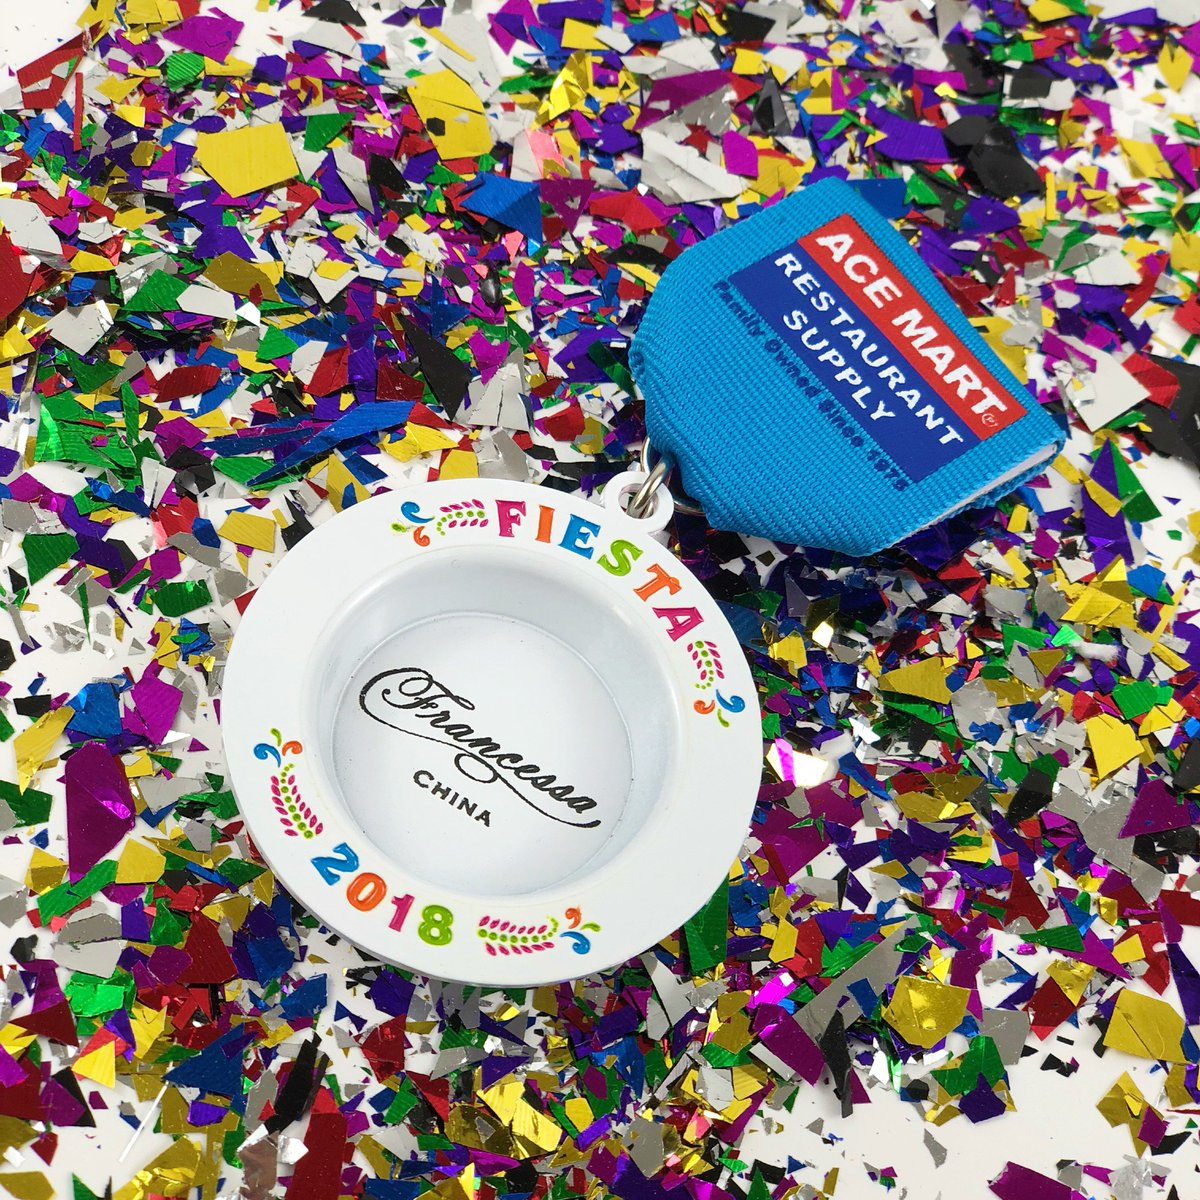 Ace Mart Restaurant Supply On Twitter Our Fiesta San Antonio Medals Are Now Available Online Order Yours Today For Only 10 Here Https T Co 2fkcwk2bcu Vivafiesta Https T Co He2cuioe20